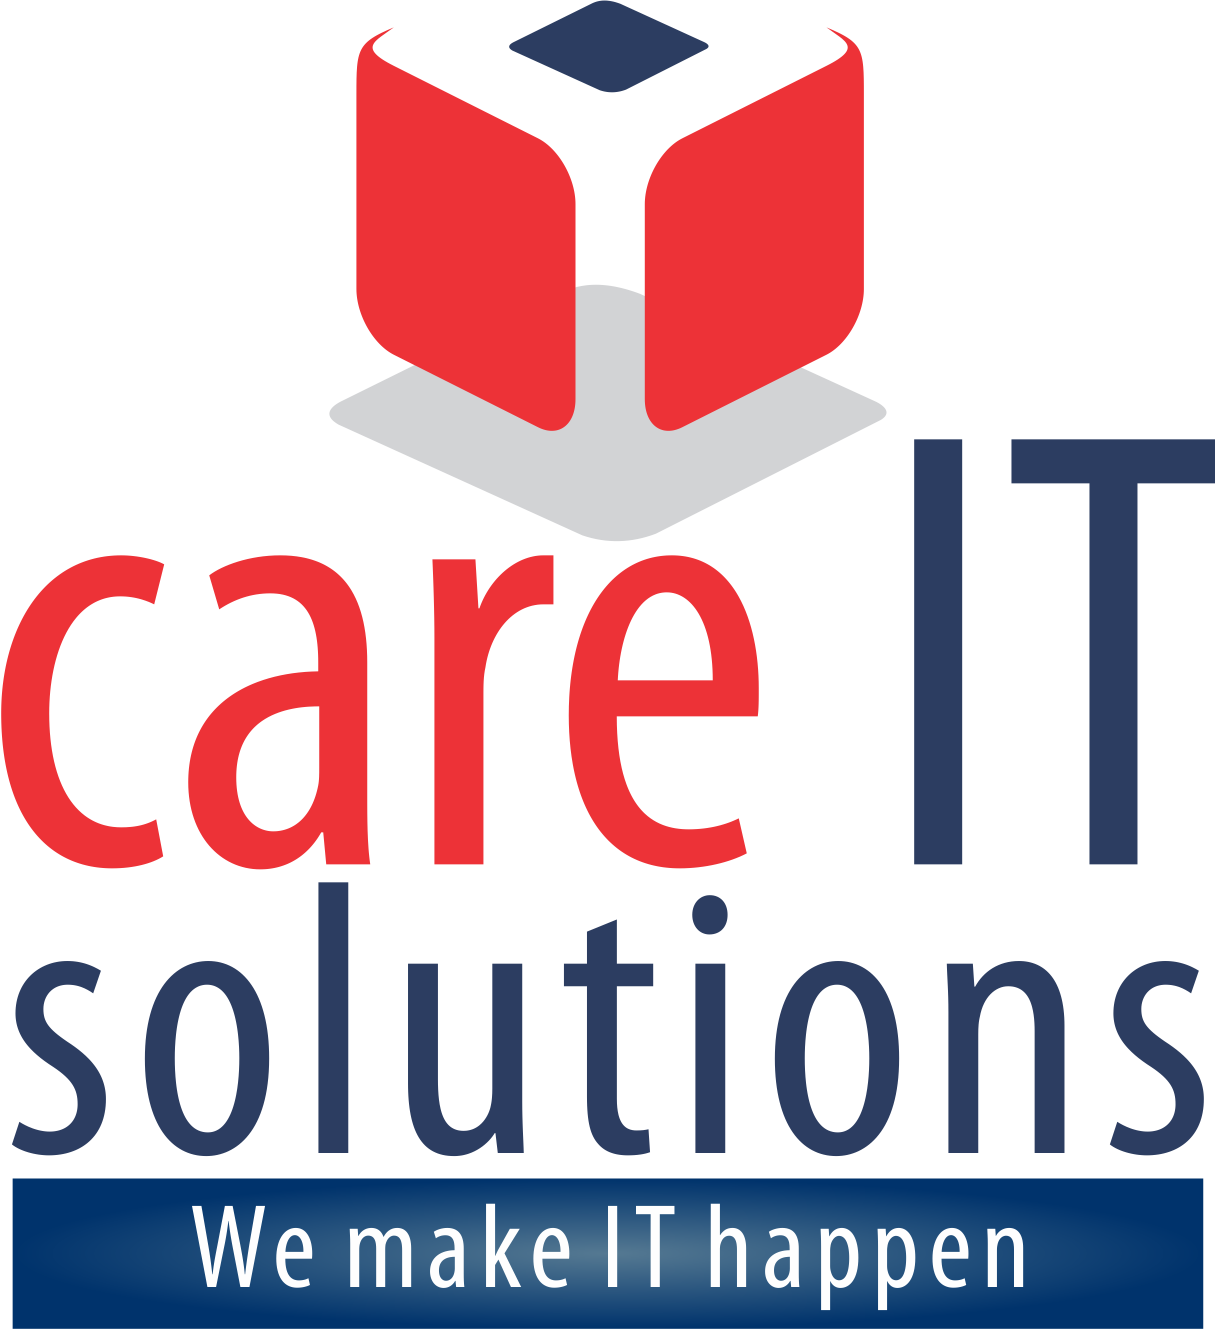 Care ITSolutions image